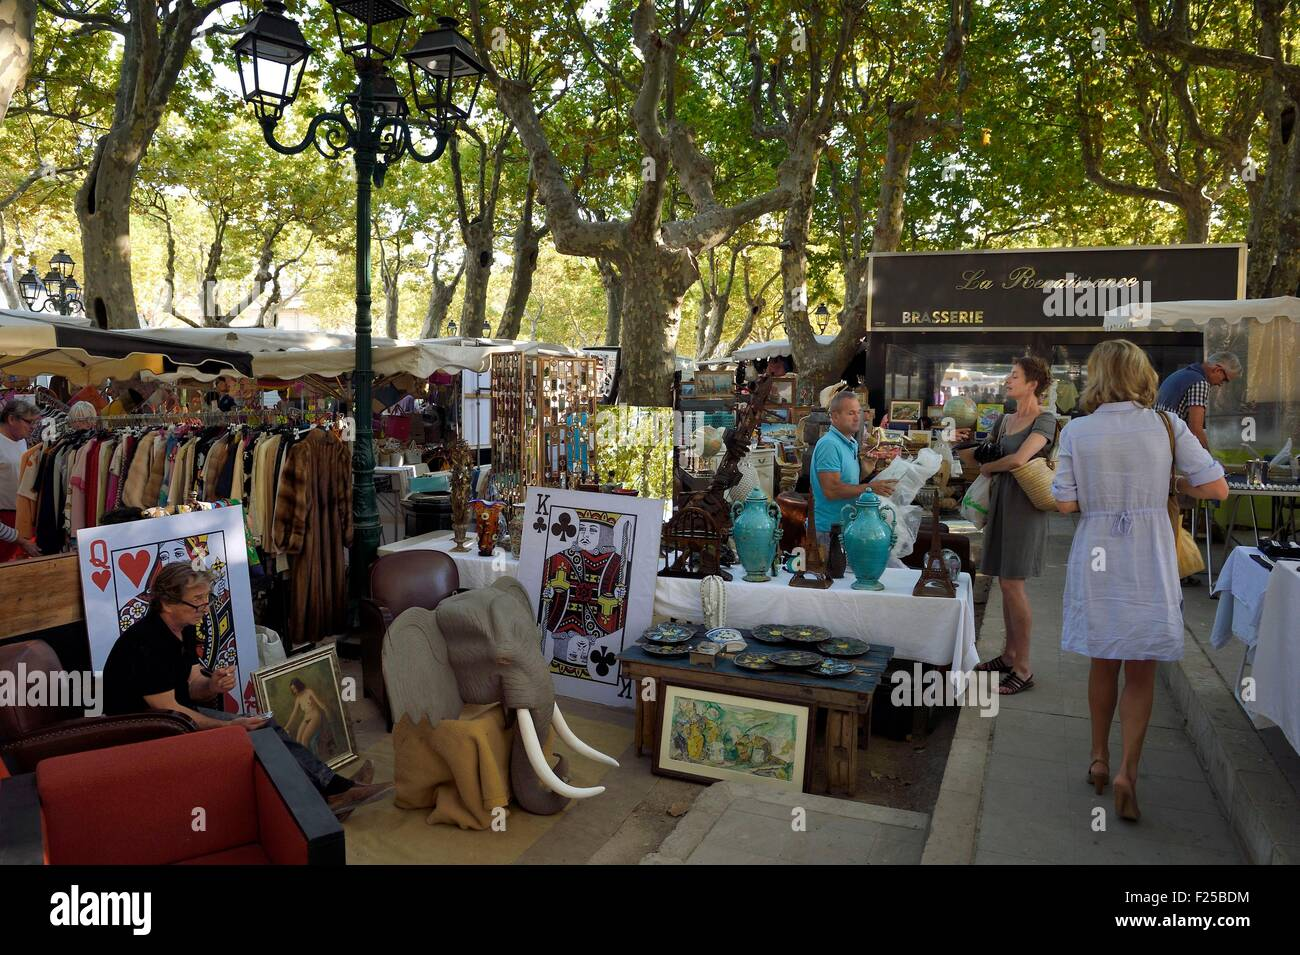 France, Var, Saint-Tropez, Place des Lices, every Tuesday and Saturday morning the market on the Place des Lices - Stock Image